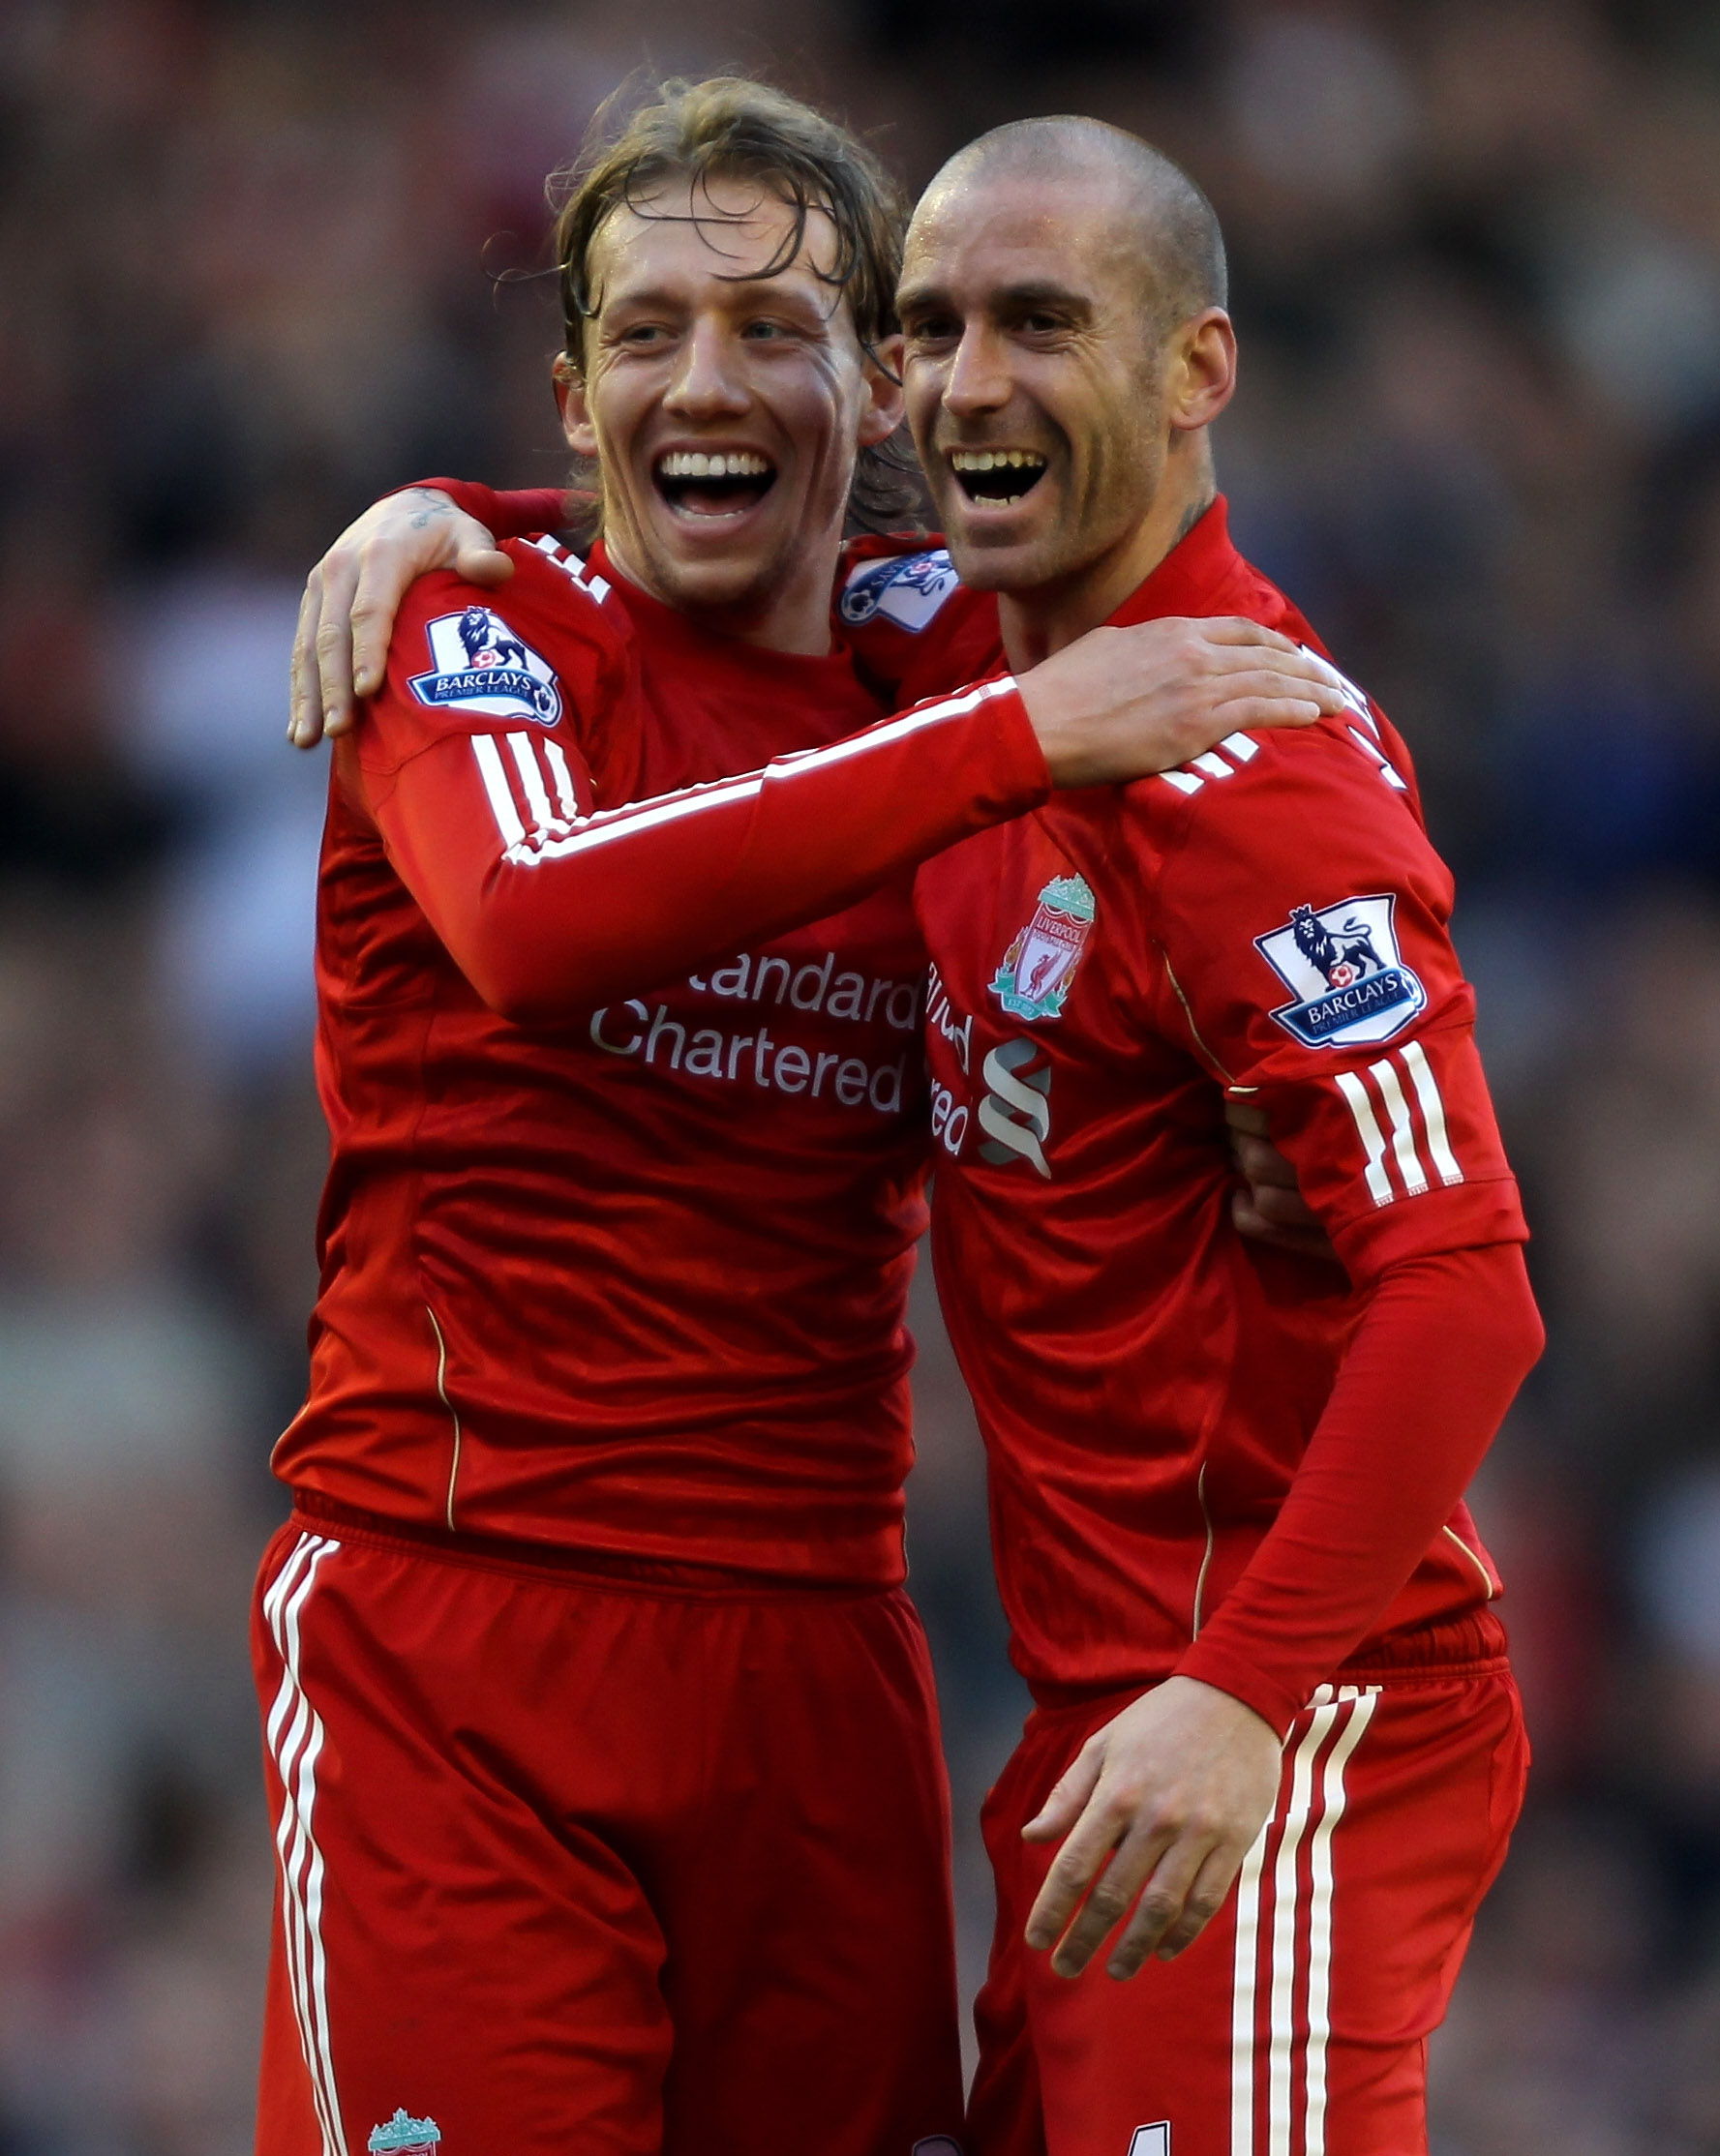 LIVERPOOL, ENGLAND - FEBRUARY 12:  Raul Meireles (R) of Liverpool celebrates scoring the opening goal with team mate Lucas during the Barclays Premier League match between Liverpool and Wigan Athletic at Anfield on February 12, 2011 in Liverpool, England.